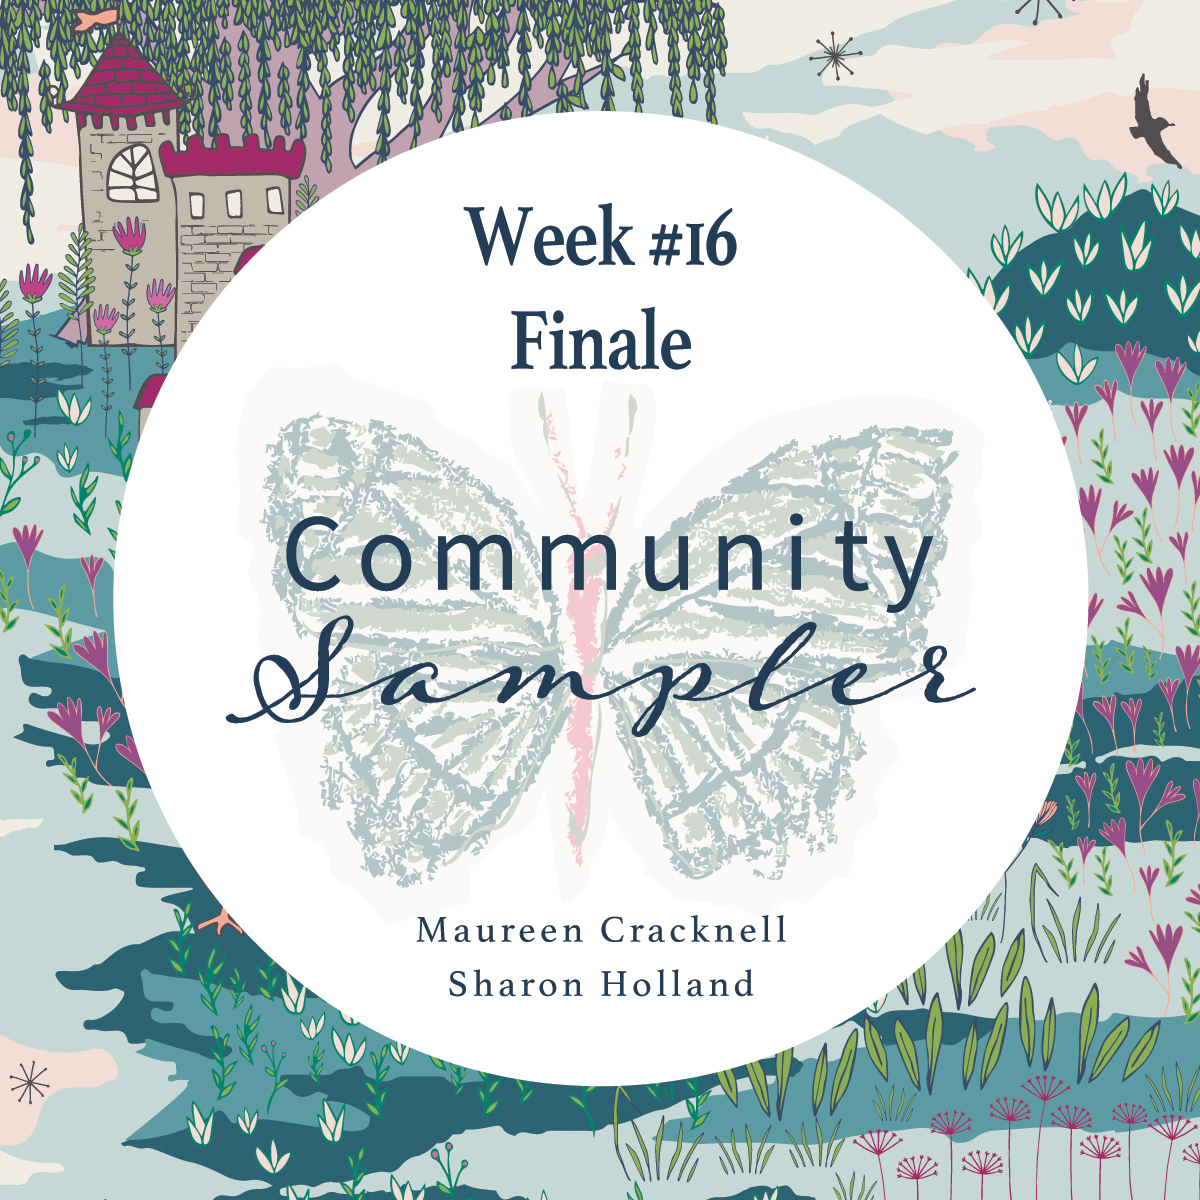 Community Sampler Week #16 Finale-01.jpg